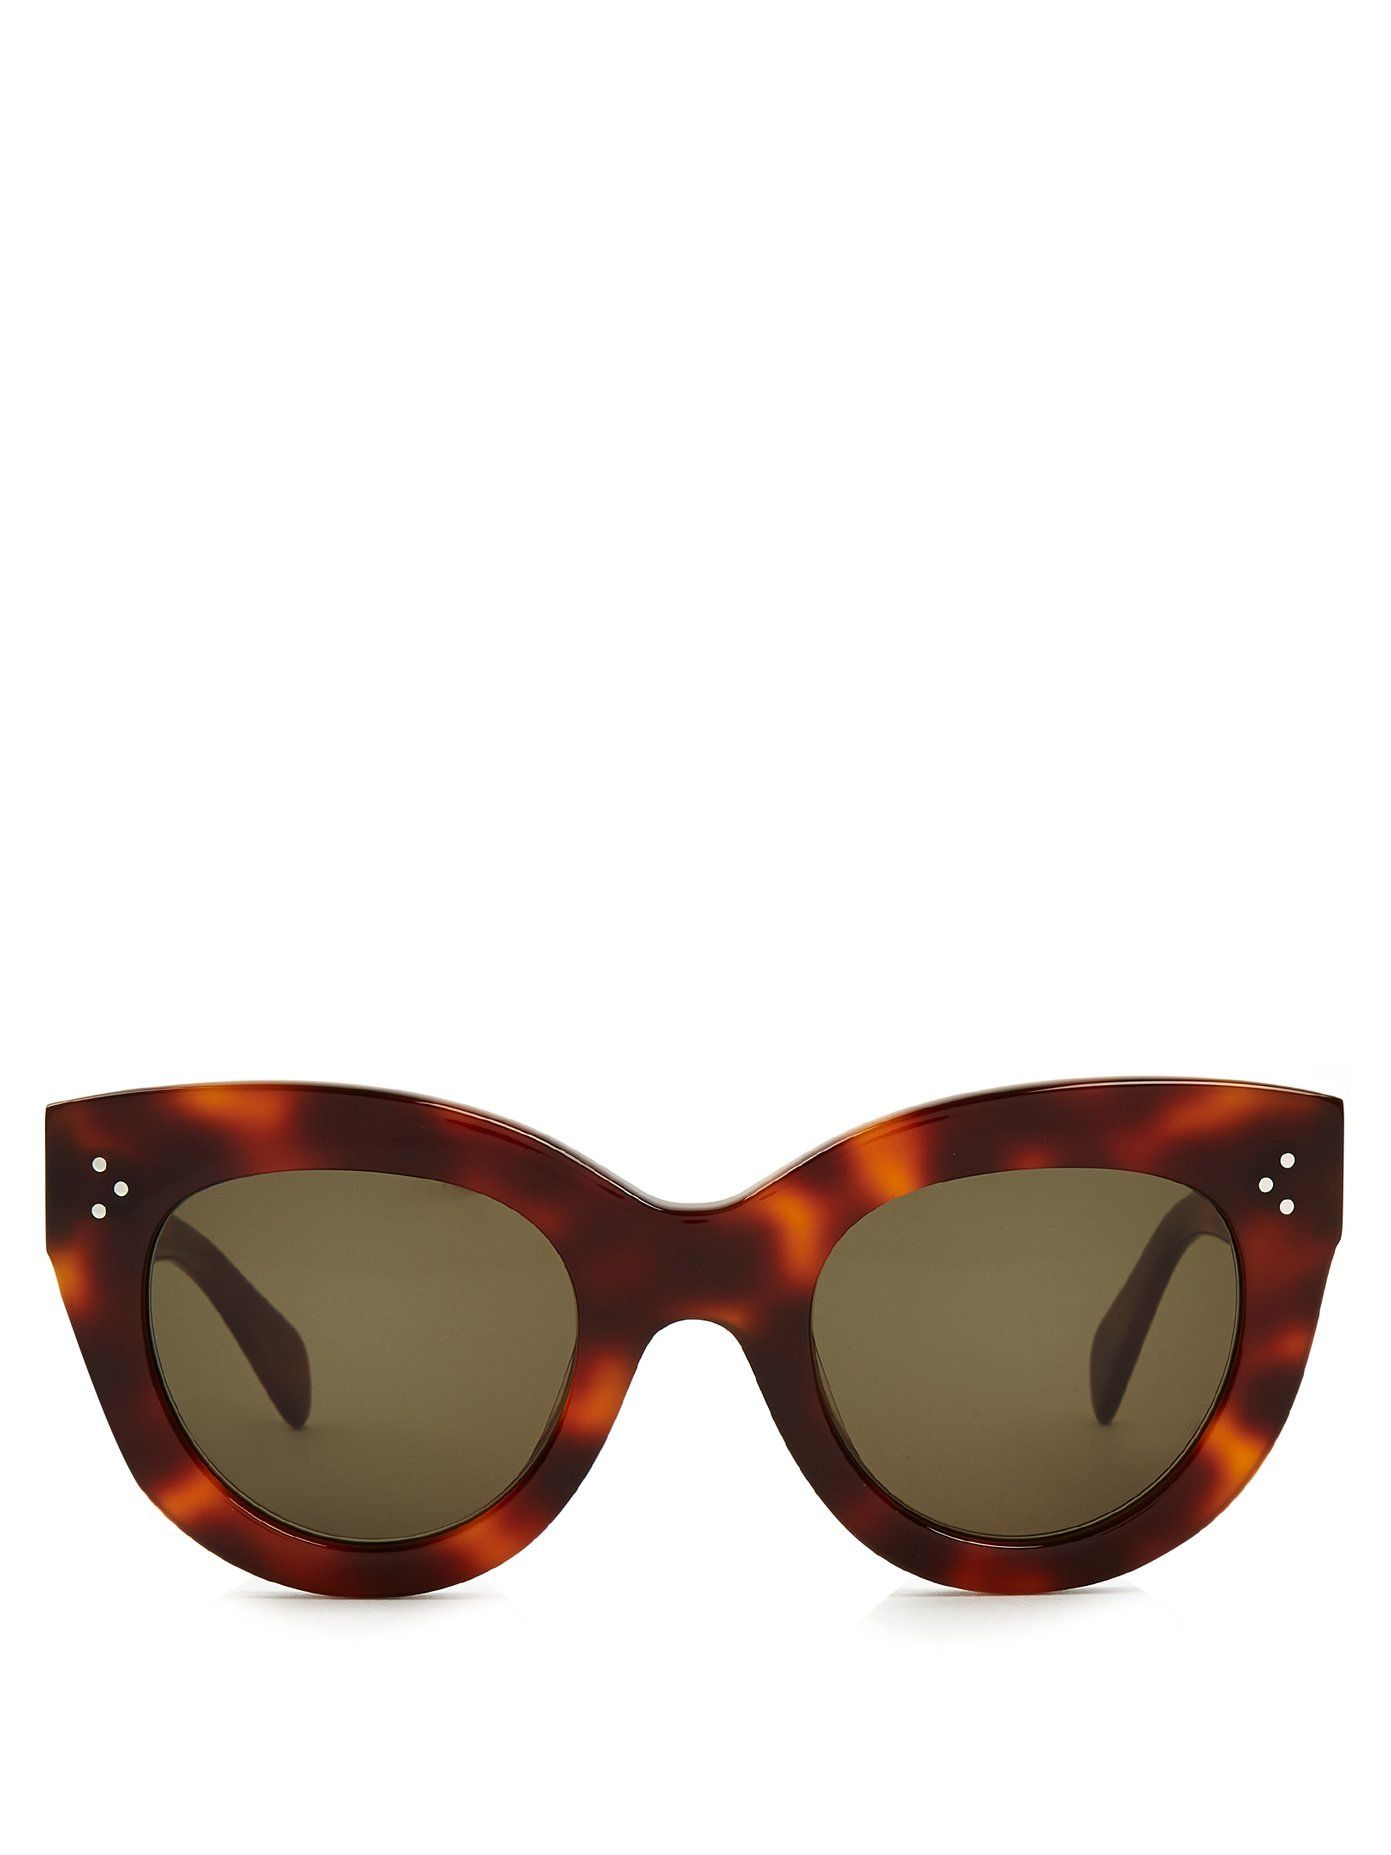 6436a1f94a2 Click here to buy Céline Eyewear Caty cat-eye acetate sunglasses at  MATCHESFASHION.COM